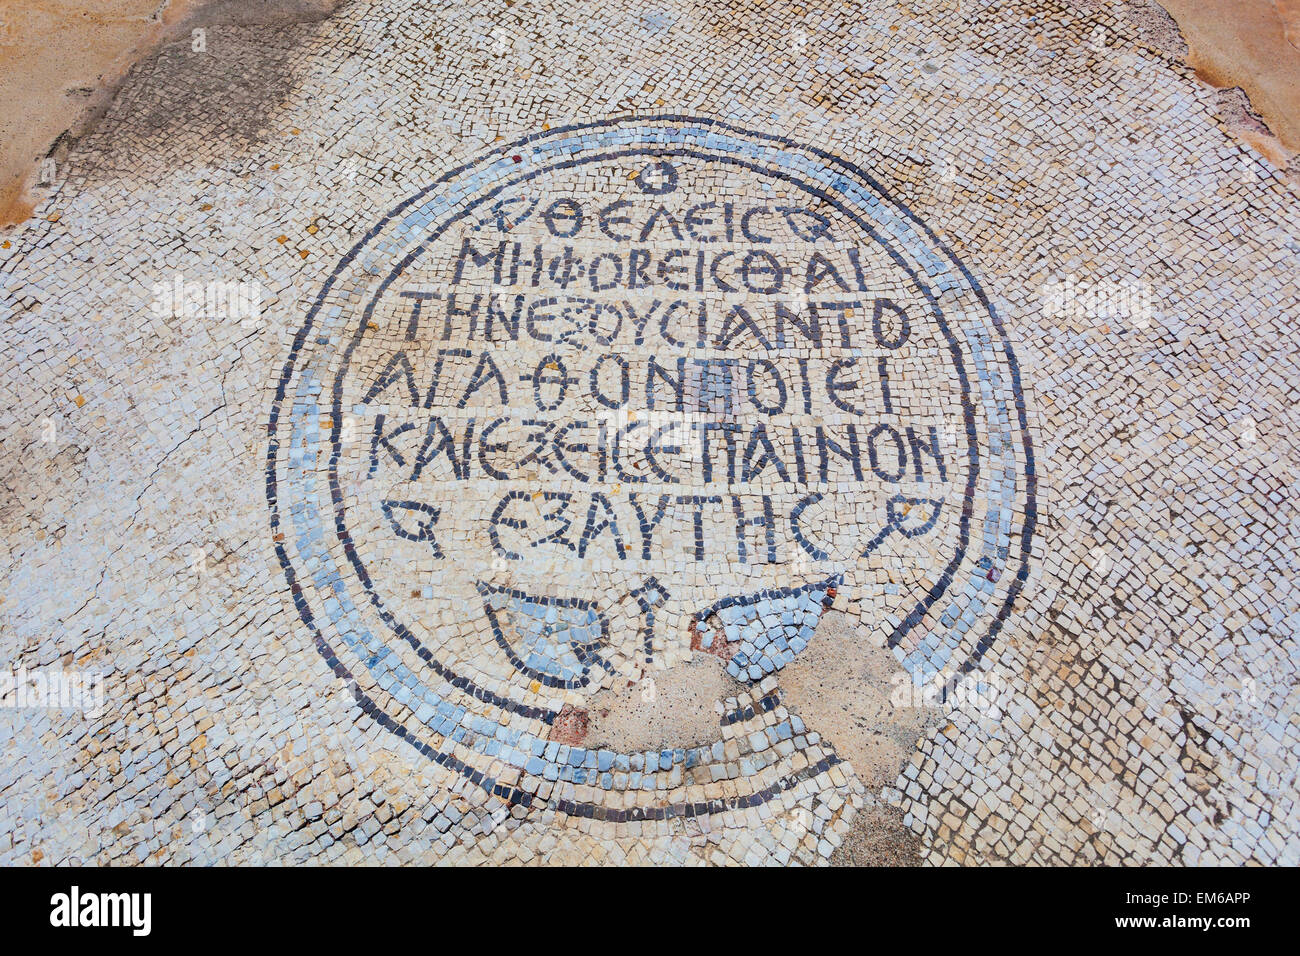 Greek,Language,Writing,Message,Sign,Tile,Circle - Stock Image